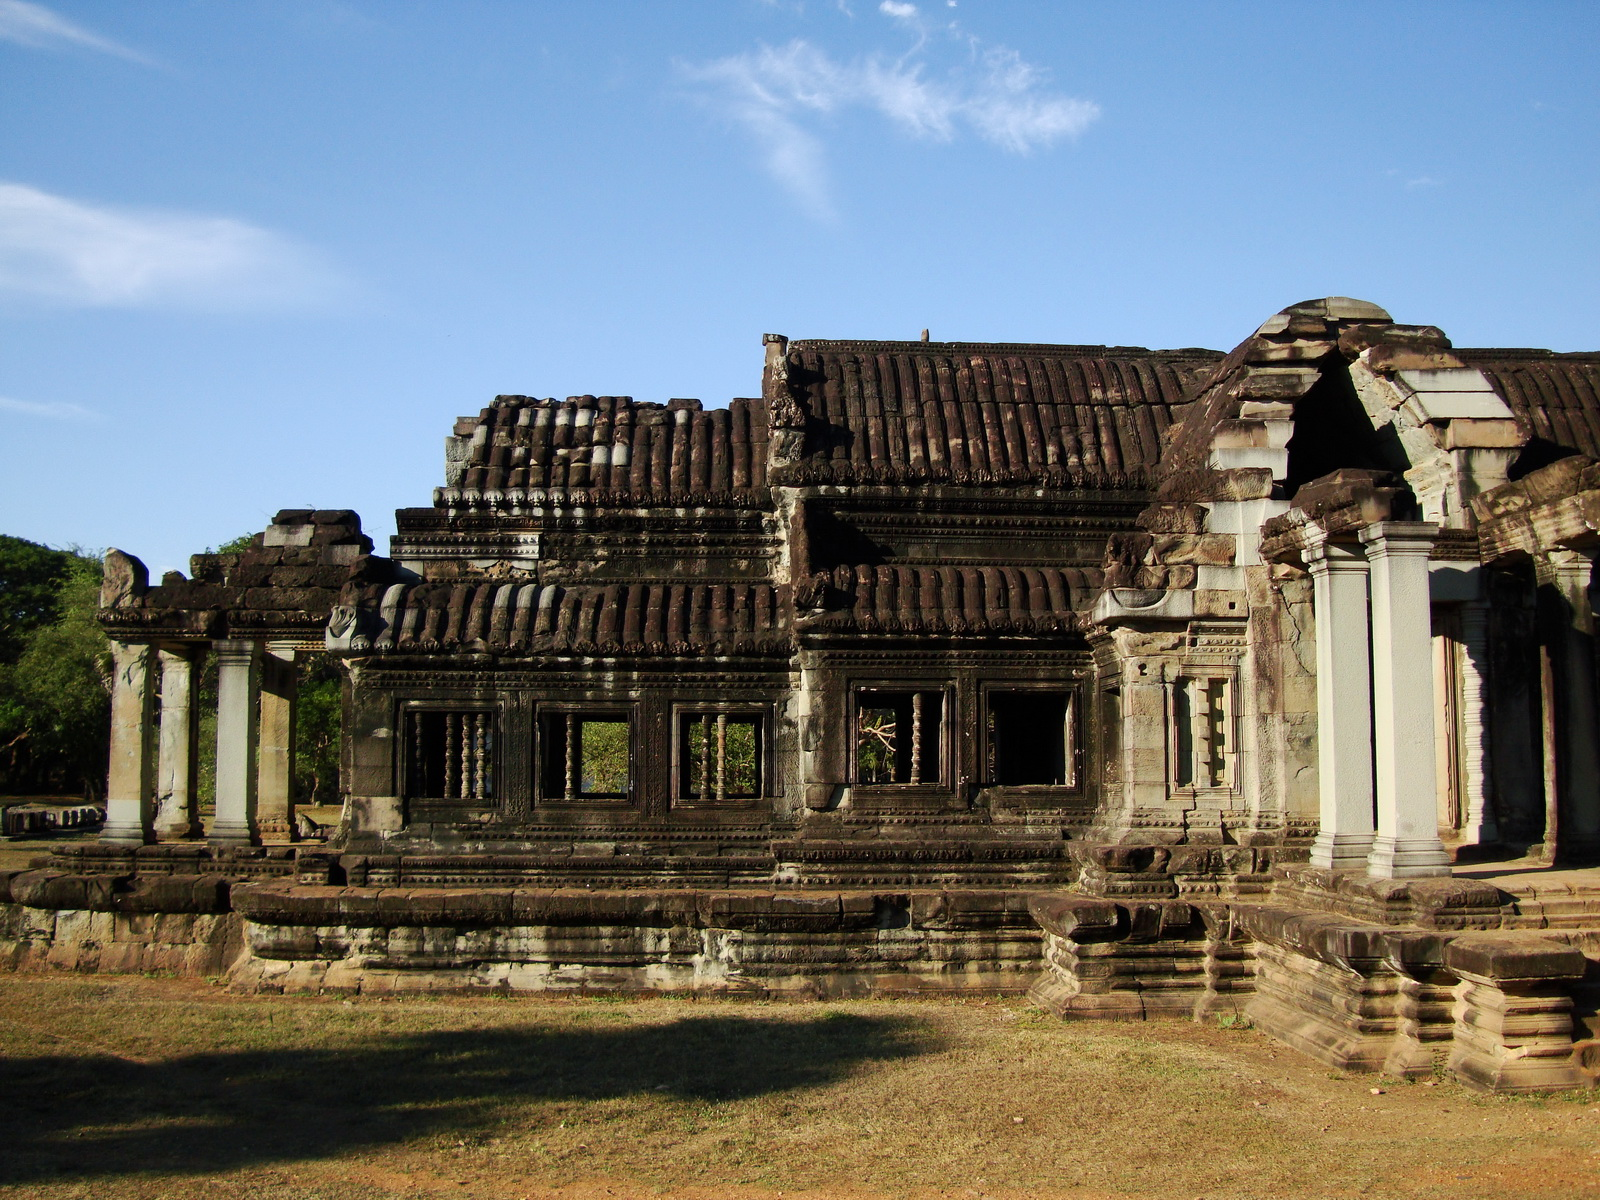 Angkor Wat Khmer architecture external library SW corner 04